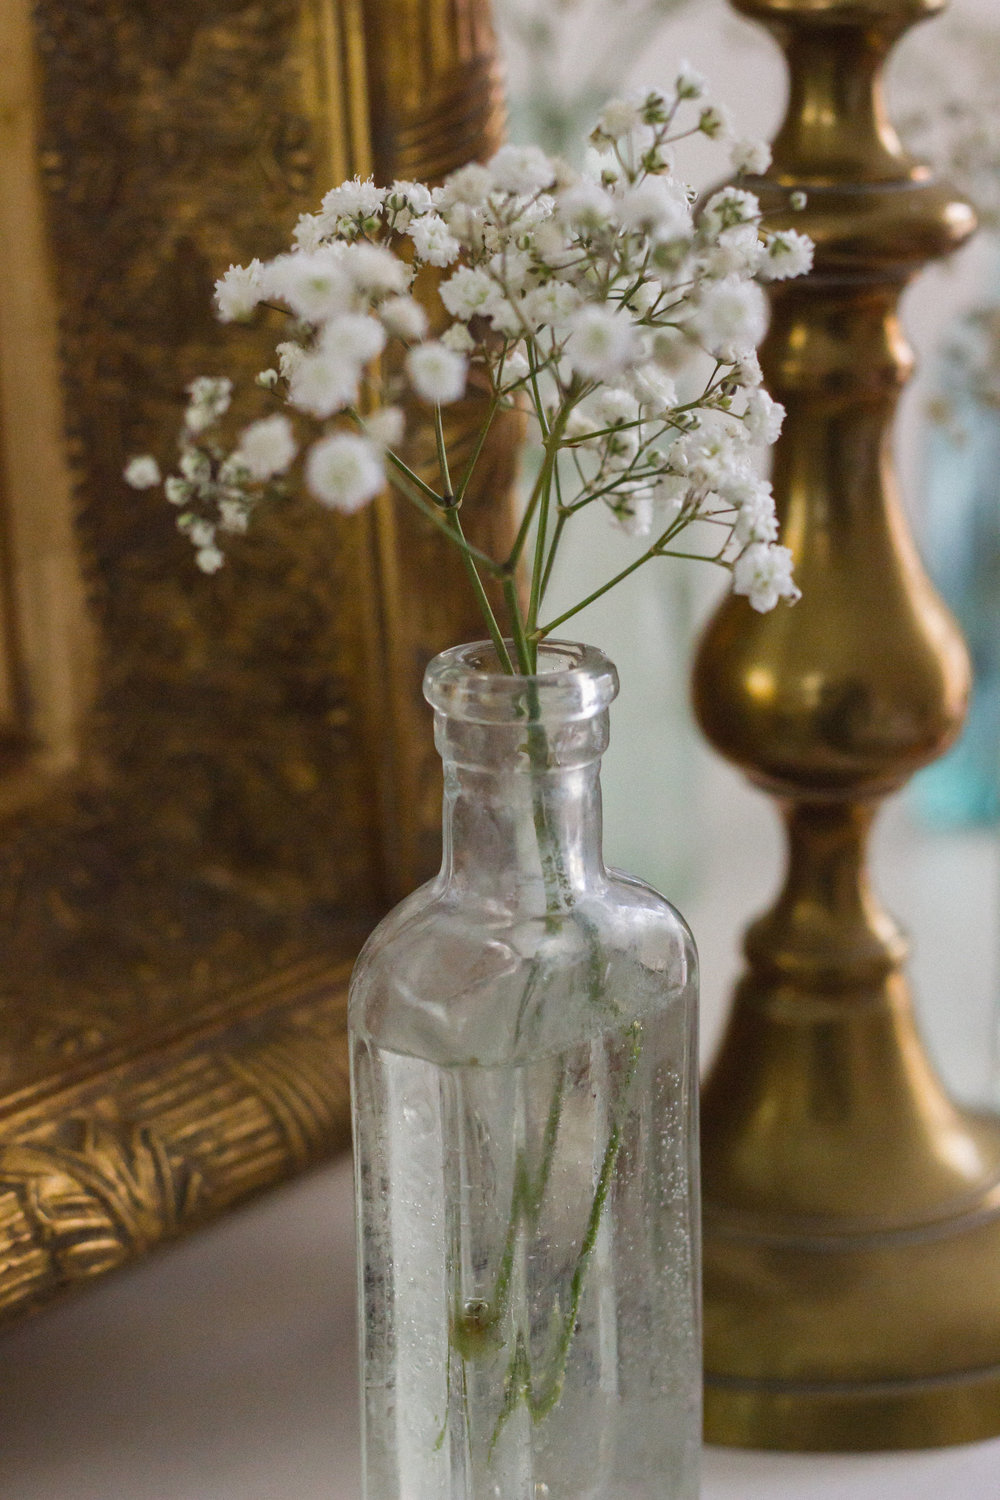 More of my pretty vintage medicine bottles that look so lovely with dainty blooms in them.